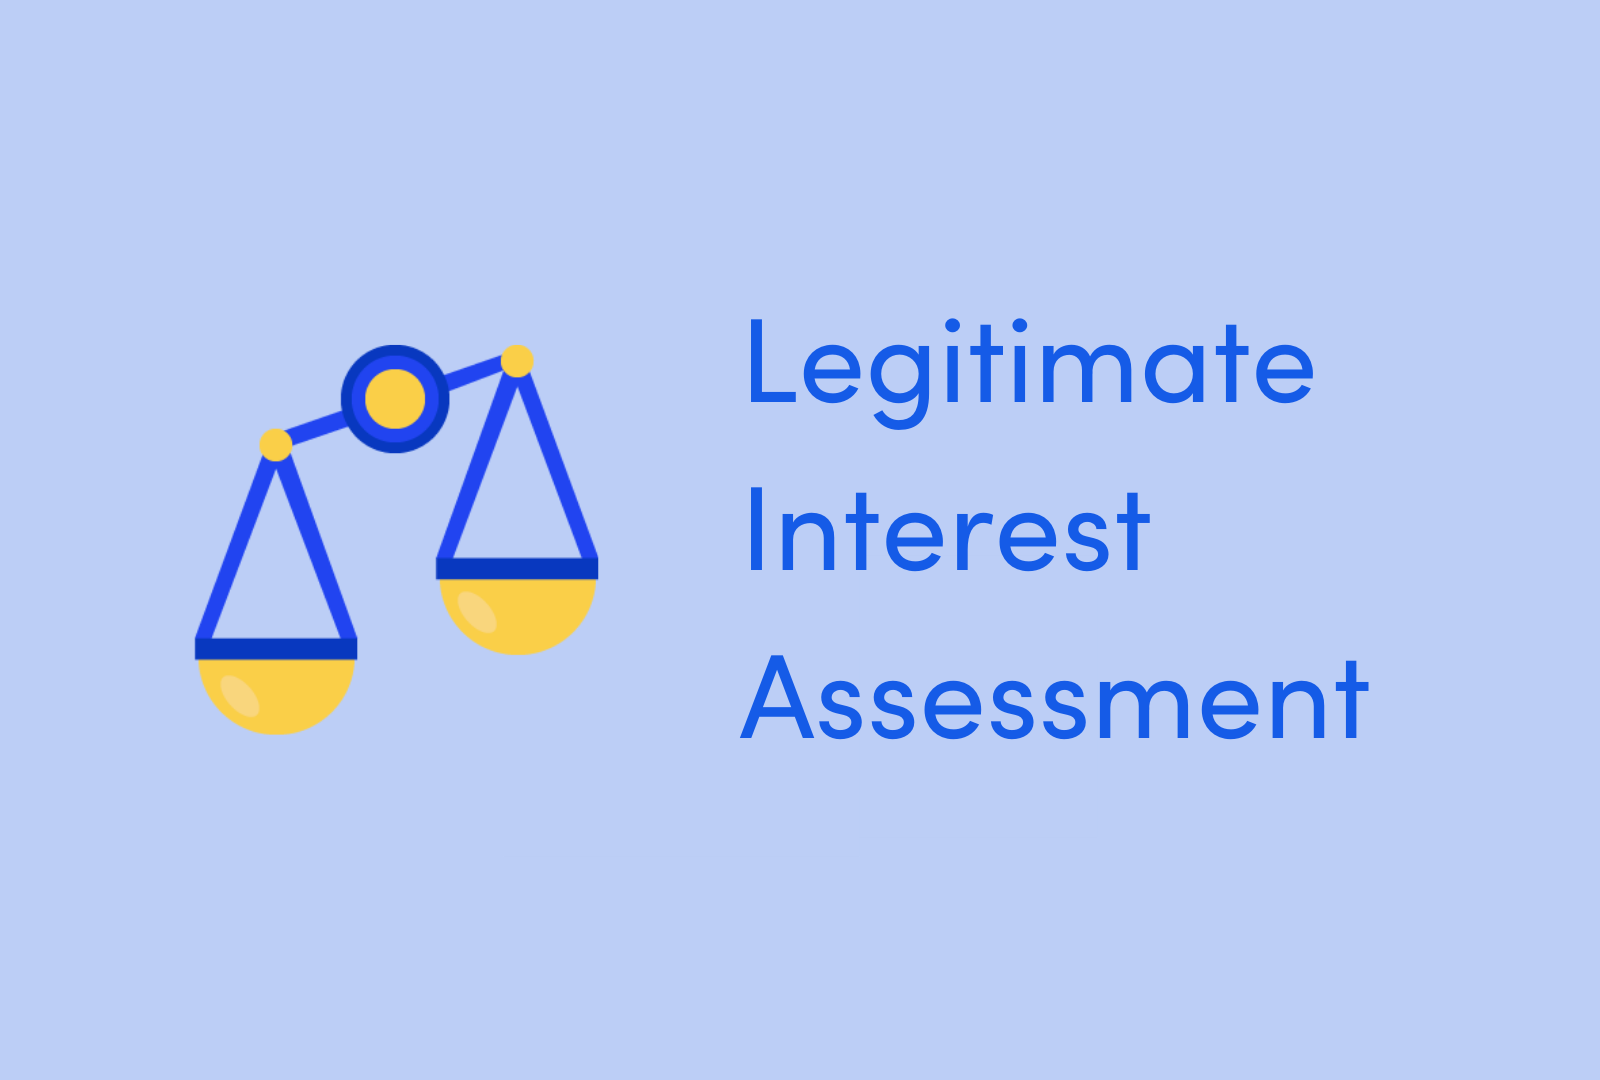 How to carry out a Legitimate Interest Assessment